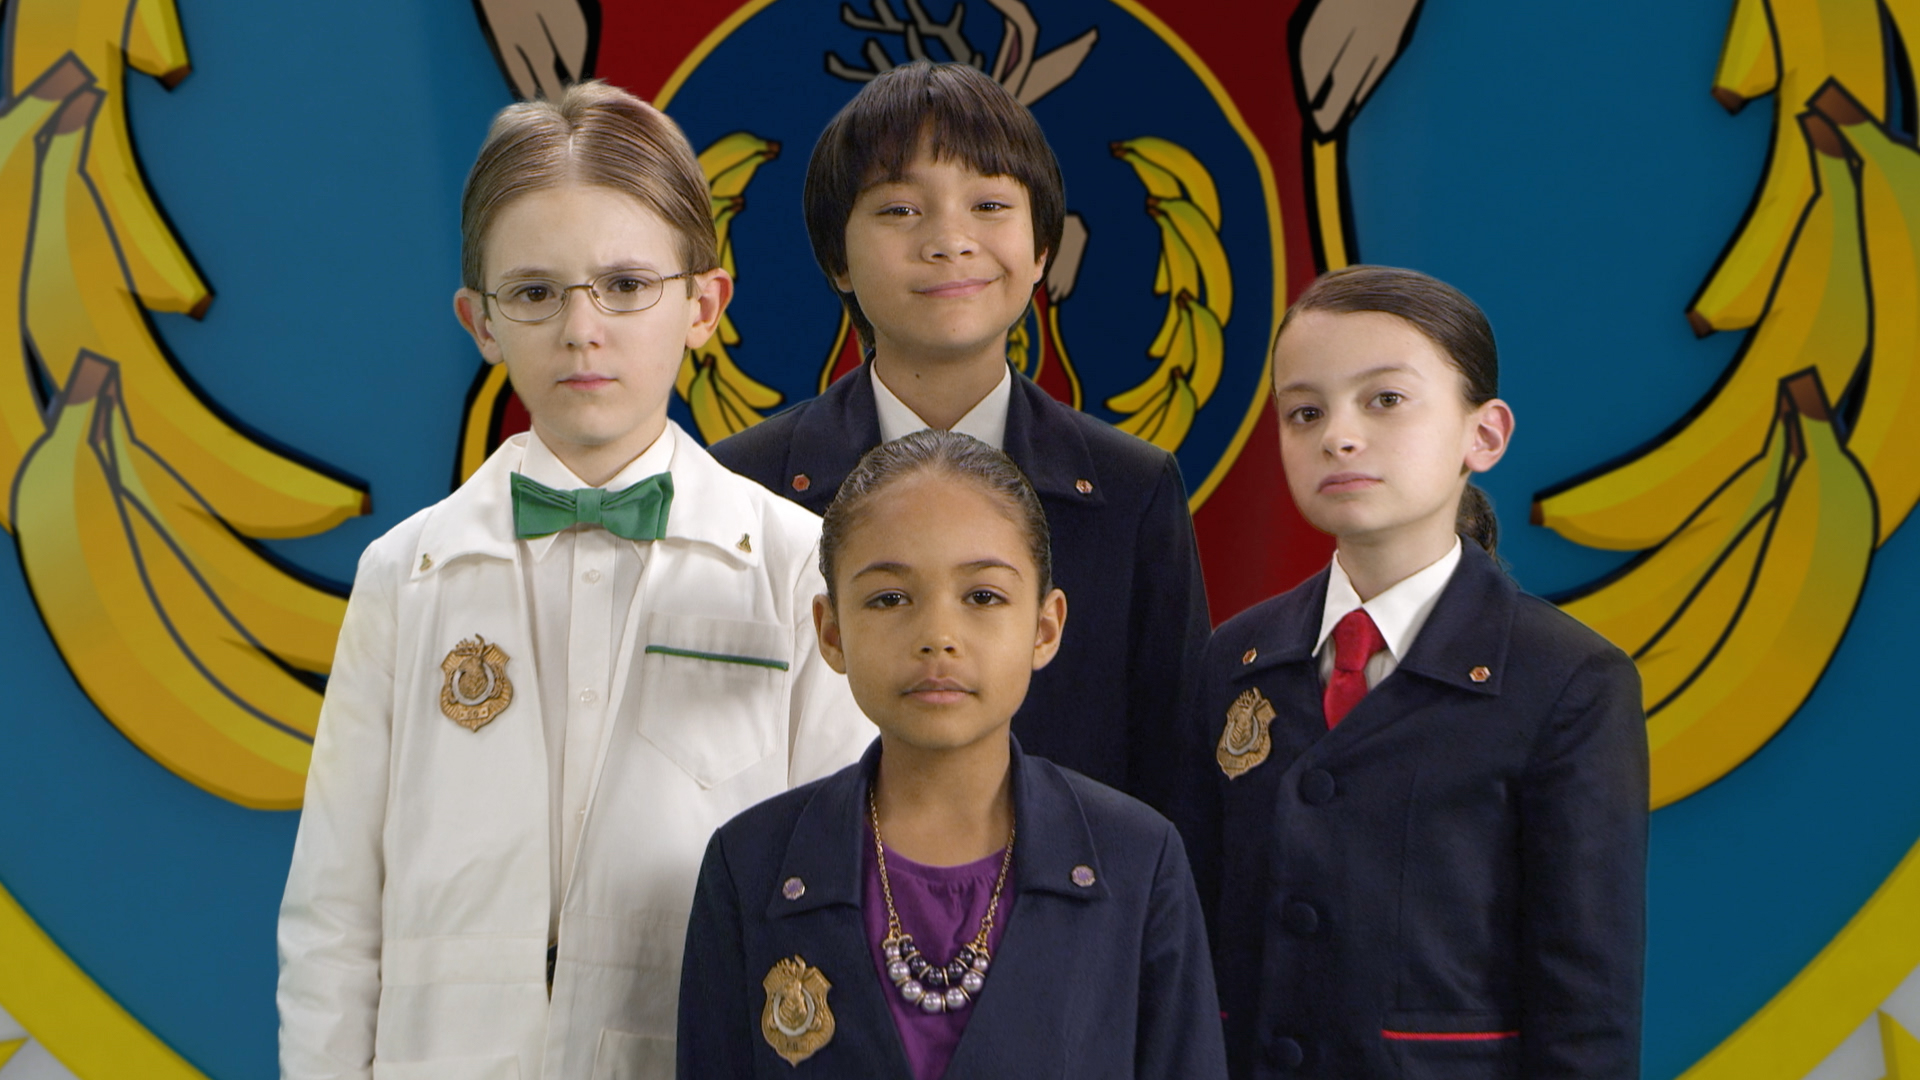 Coloring games online pbs - Meet The Characters